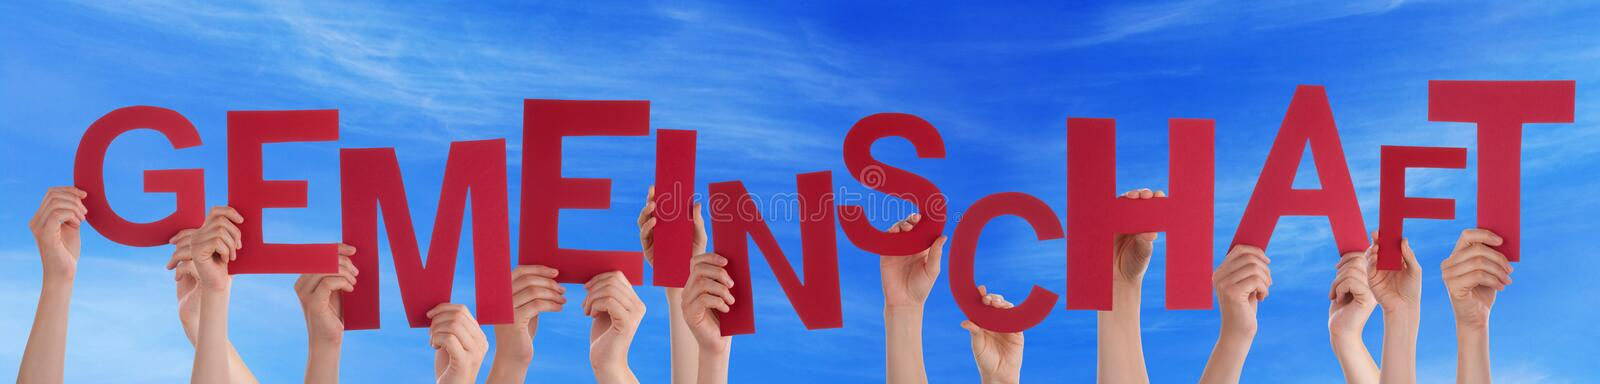 People Holding German Word Gemeinschaft Means Community Blue Sky. Many Caucasian People And Hands Holding Red Letters Or Characters Building The German Word royalty free stock photography